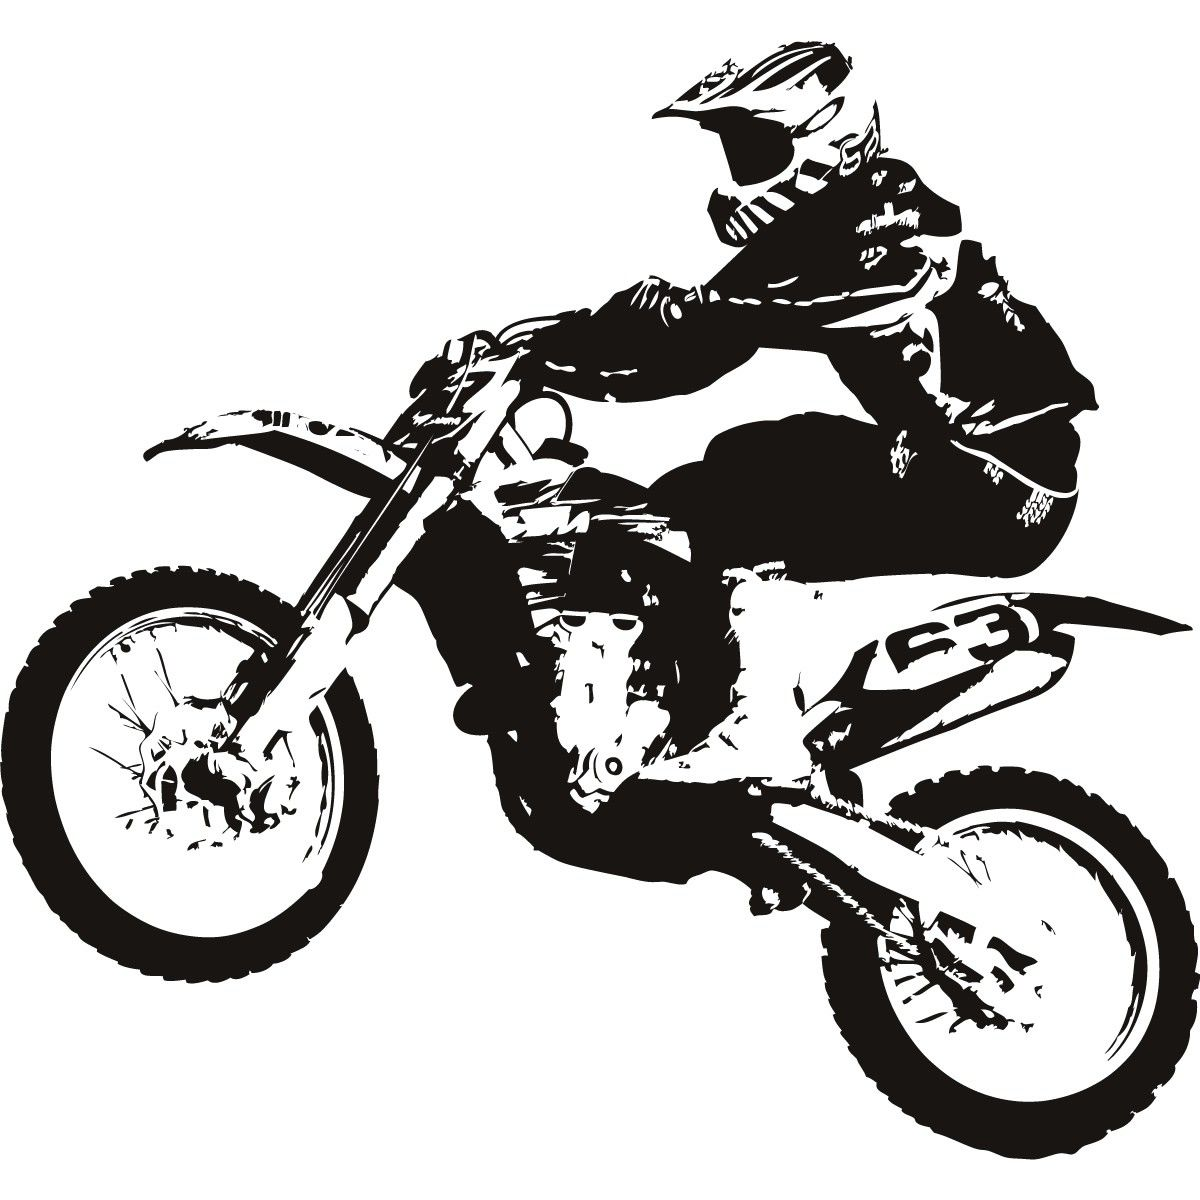 Bike clipart motocross bike. Free download for your